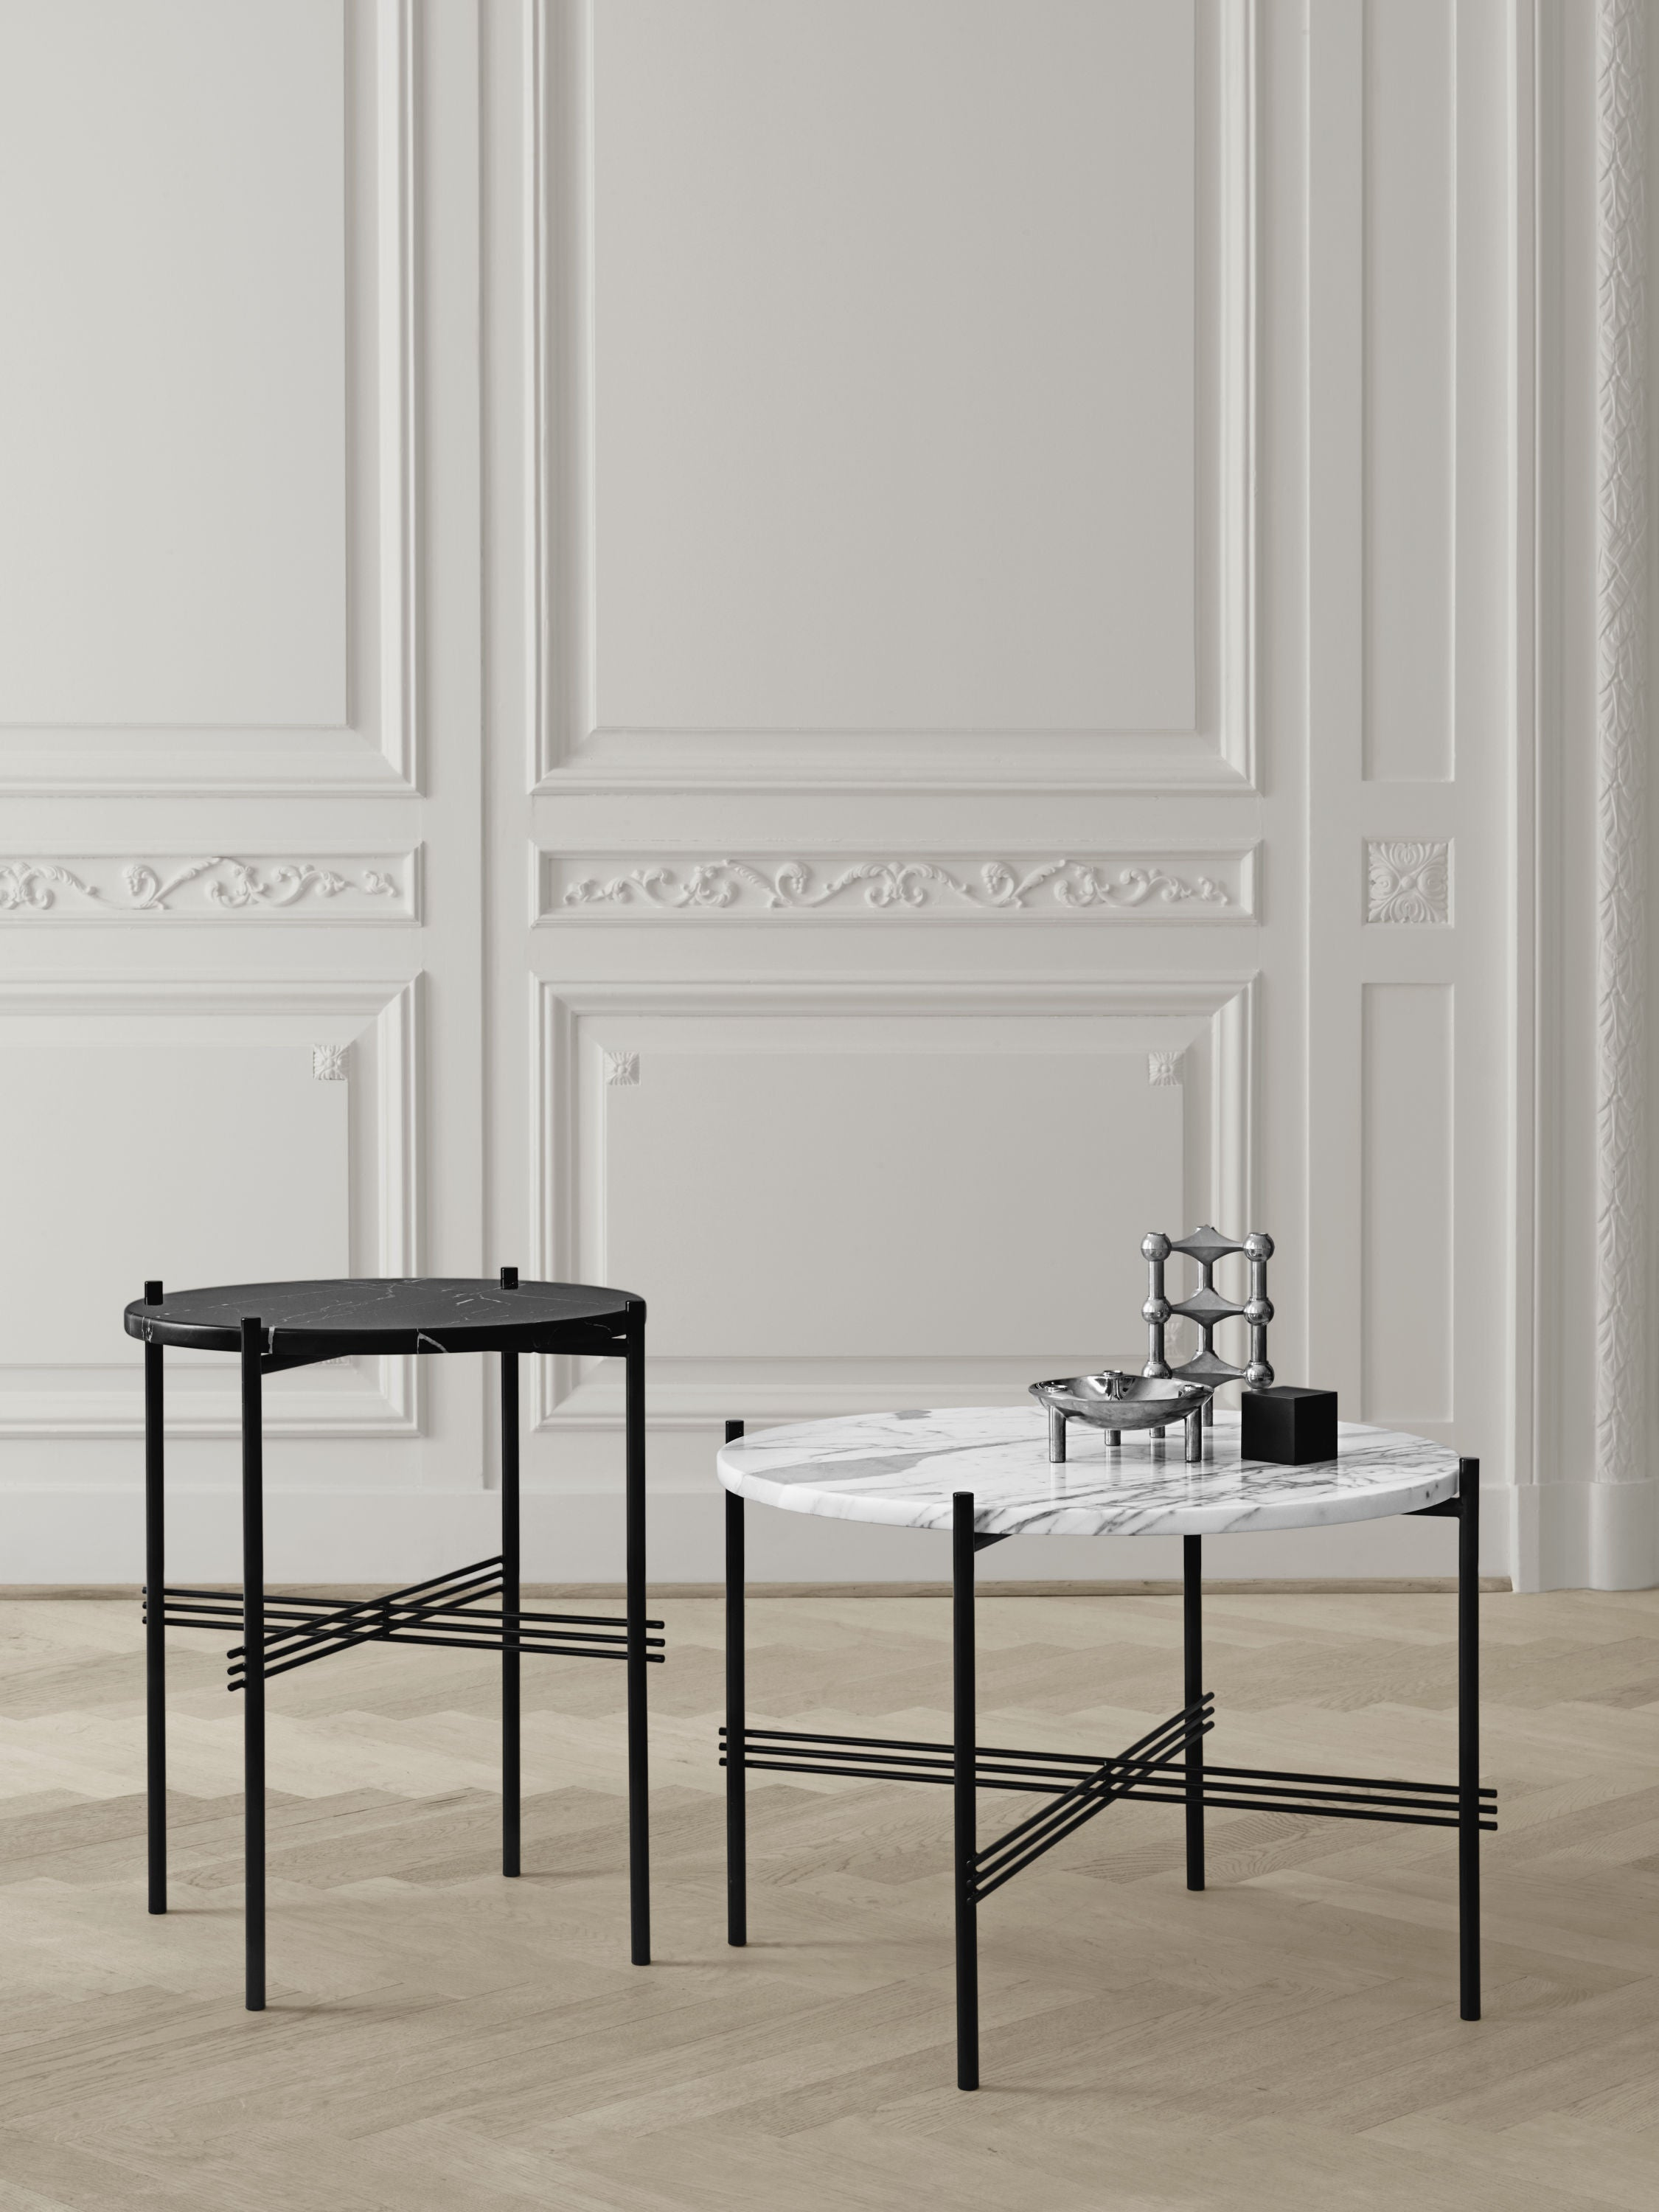 TS Coffee Table - Dia 40 Black base, Marble black top fra GUBI